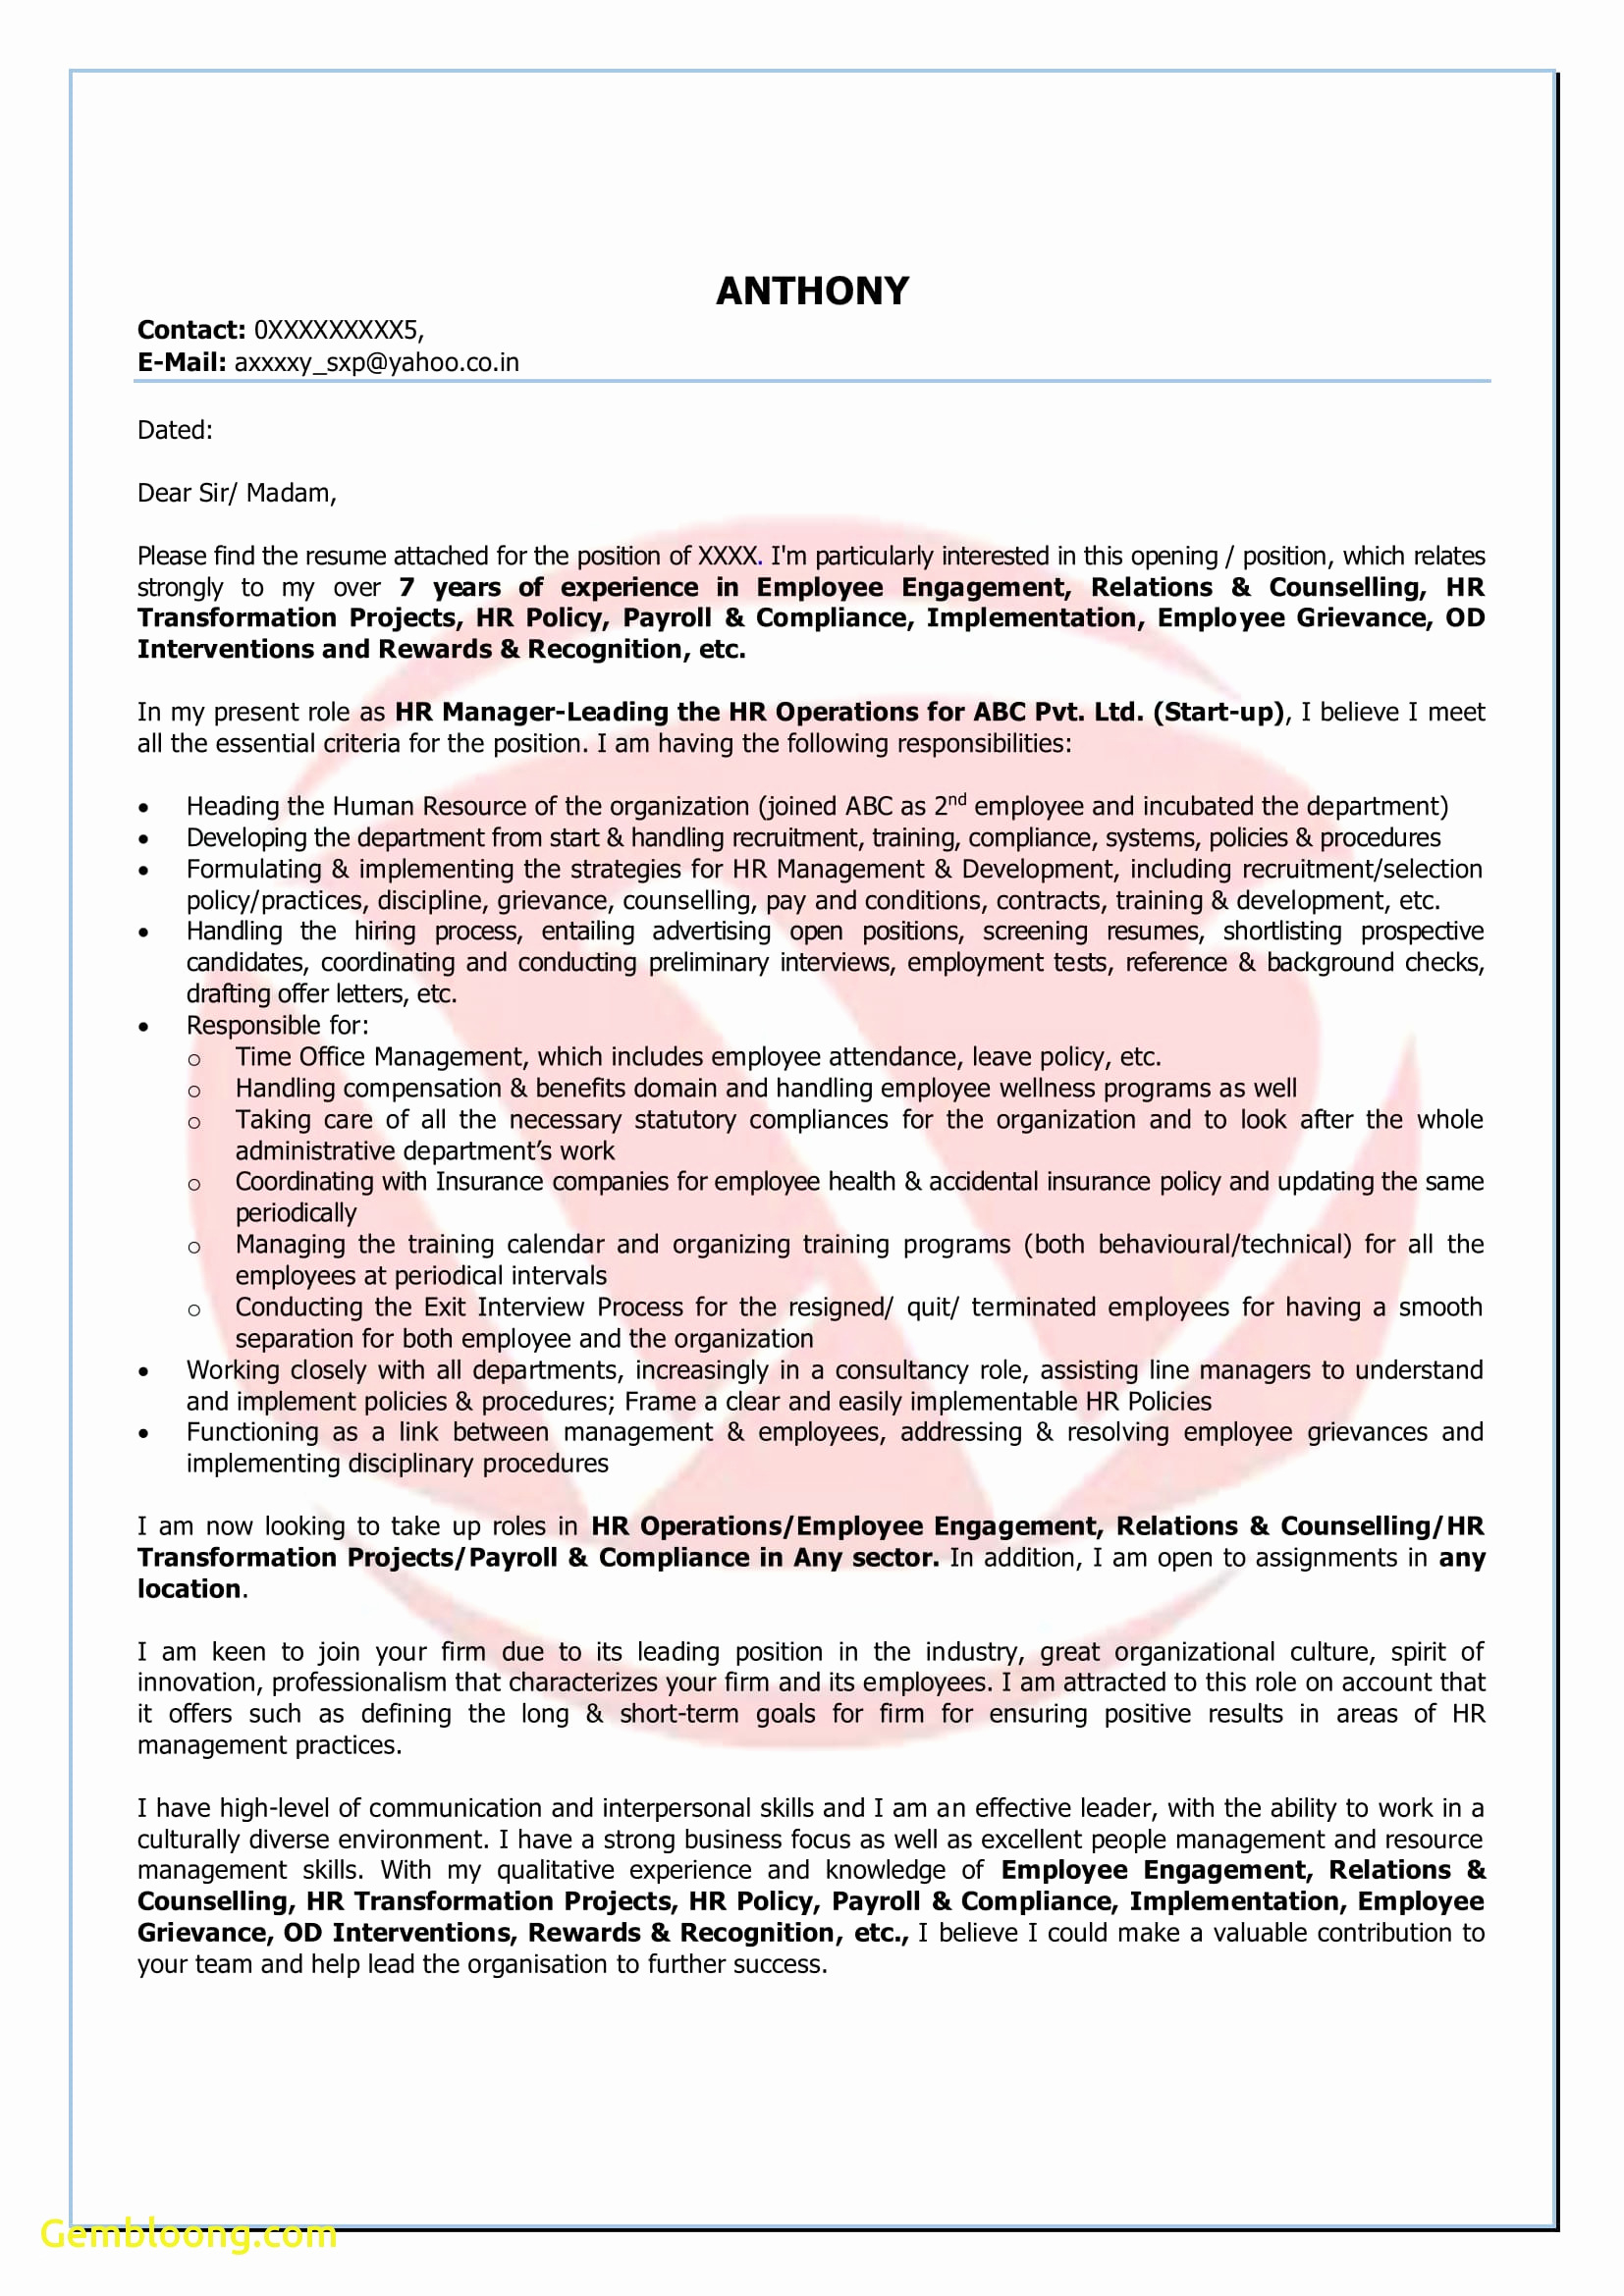 It Cover Letter Template Word - Resume Cover Letter Template Word Beautiful Free Resume Word format